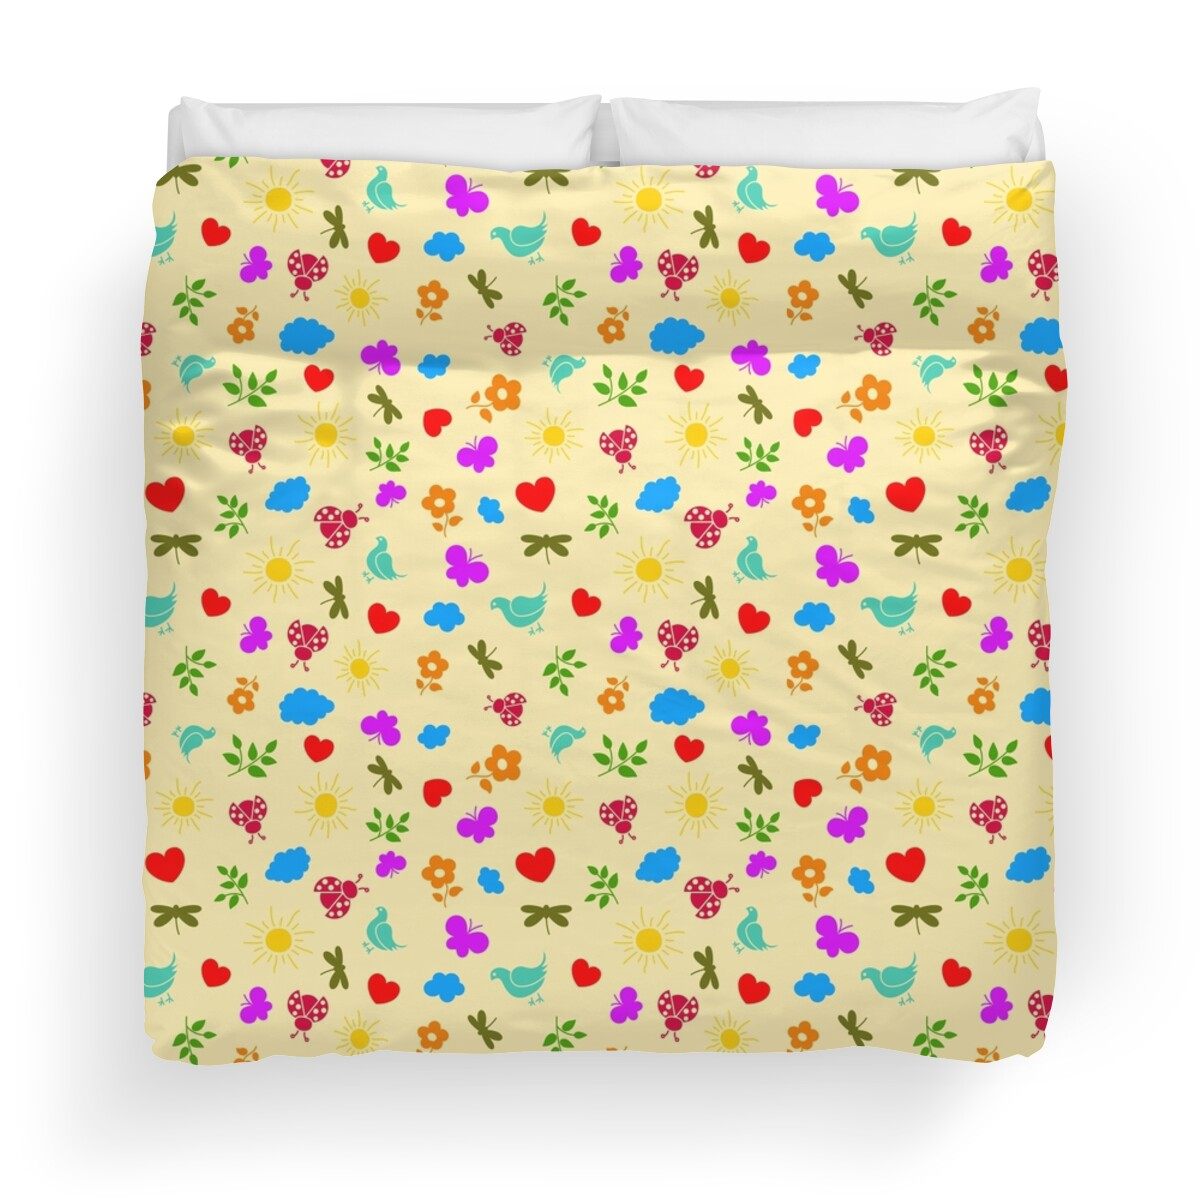 Dragon fly housses de couette redbubble for Housse couette fly